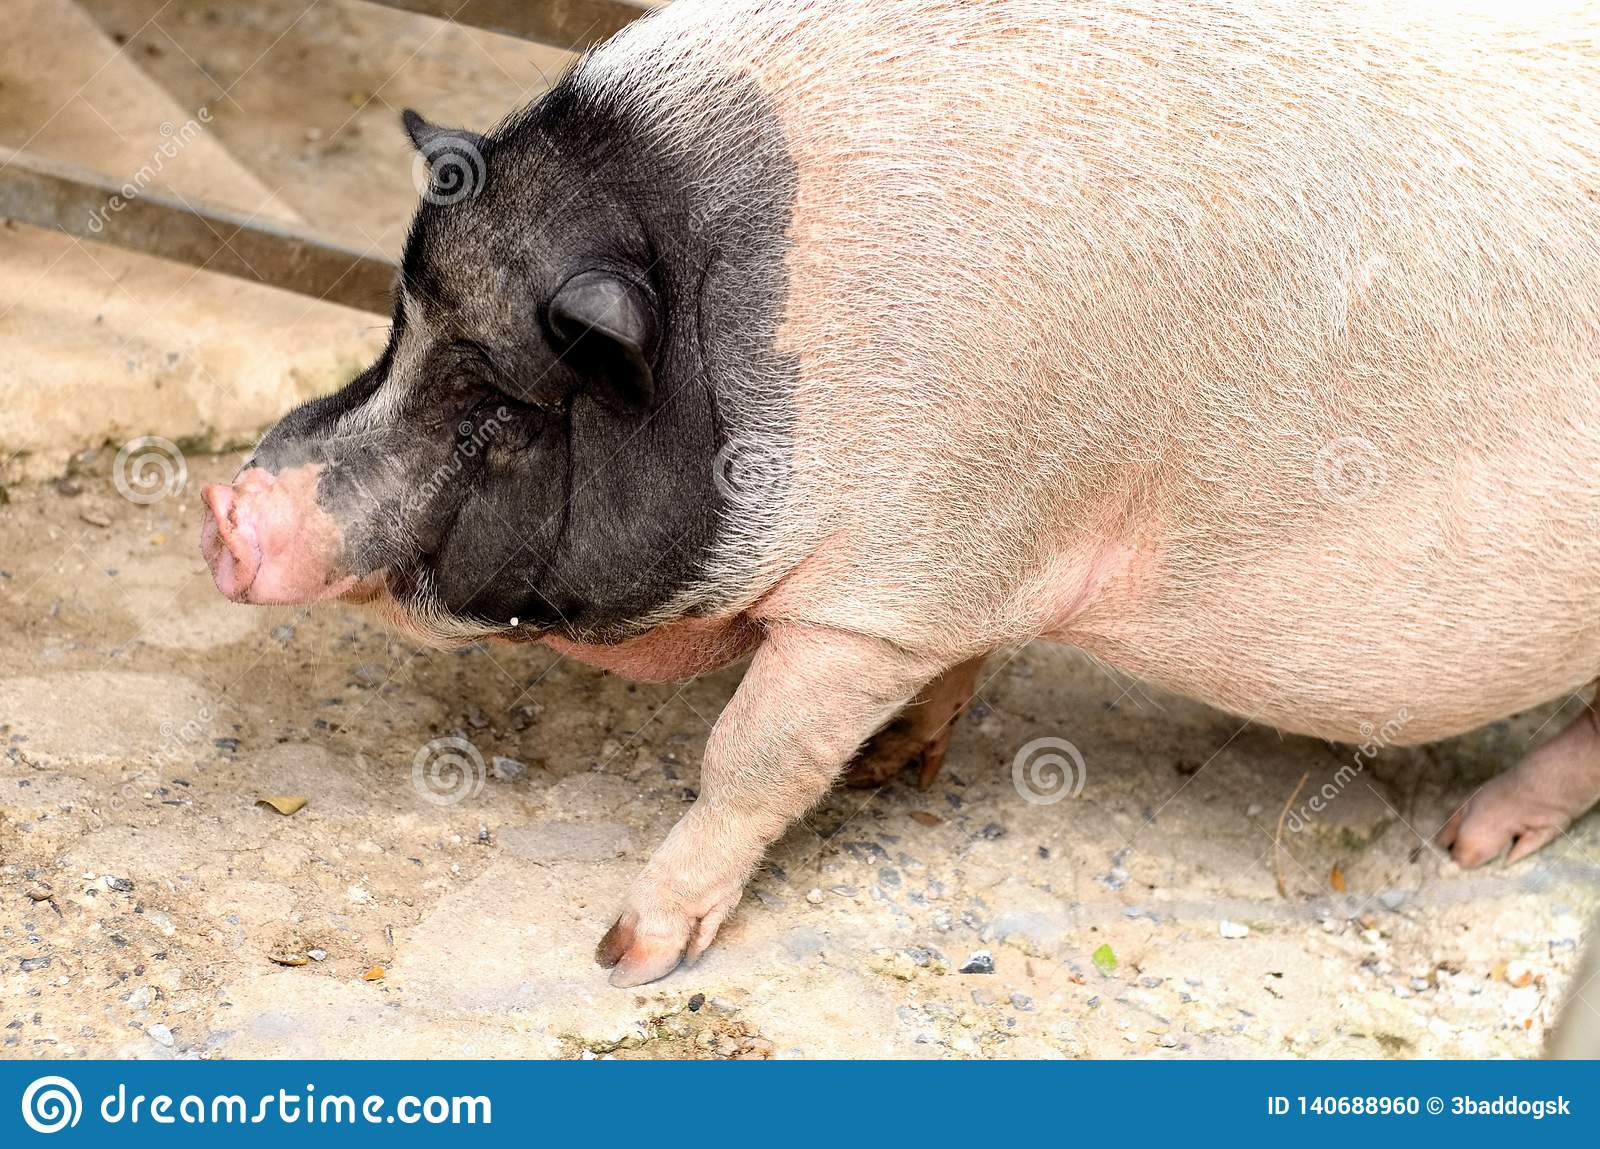 An adolescence black and white pot bellied pig is walking on the floor